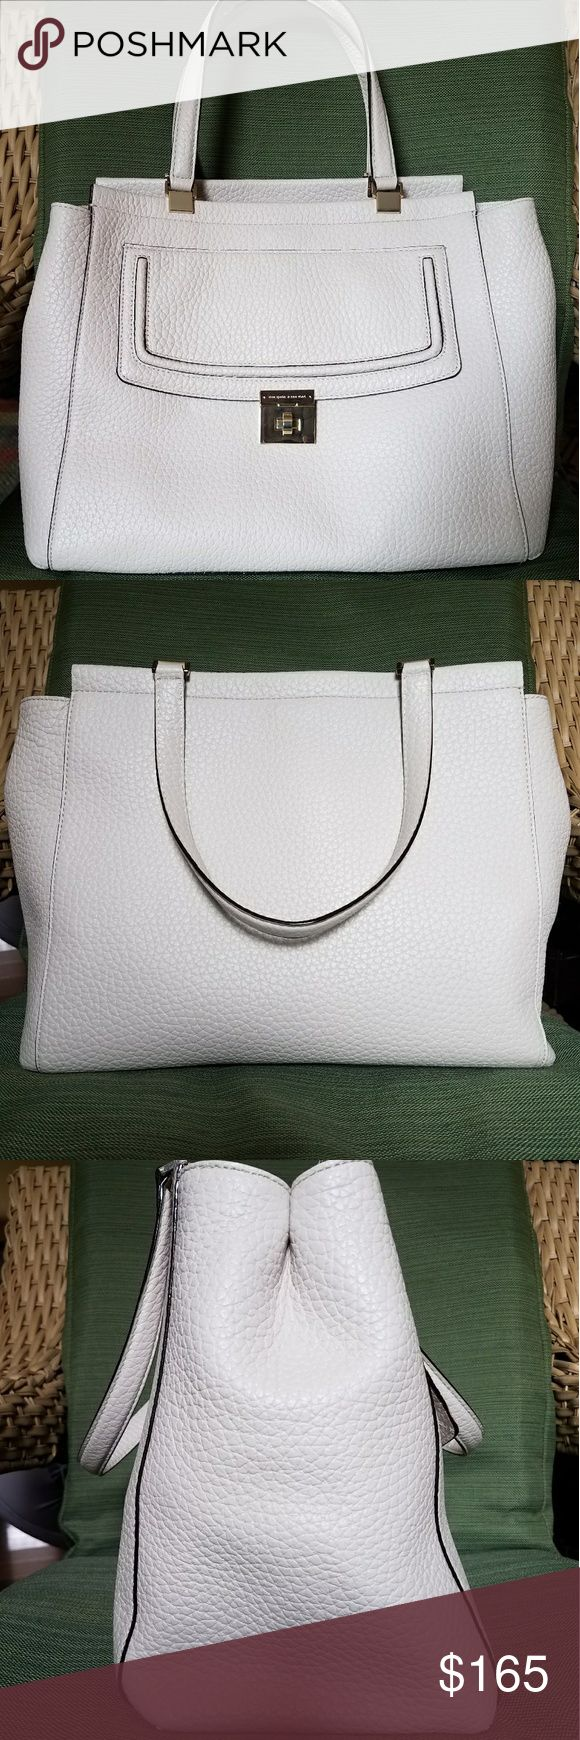 Kate spade Everett Way Thatcher Nwot Kate Spade Everett Way Thatcher tote/ shoulder bag. This large pebbled leather bag comes in a very neutral off white color with gold hardware. Some might call it a chalk color. It is not pure white. Gorgeous and professional looking bag. Large enough to carry all of your essentials. Has a slip pocket on the front of the bag under the lockable flap. kate spade Bags